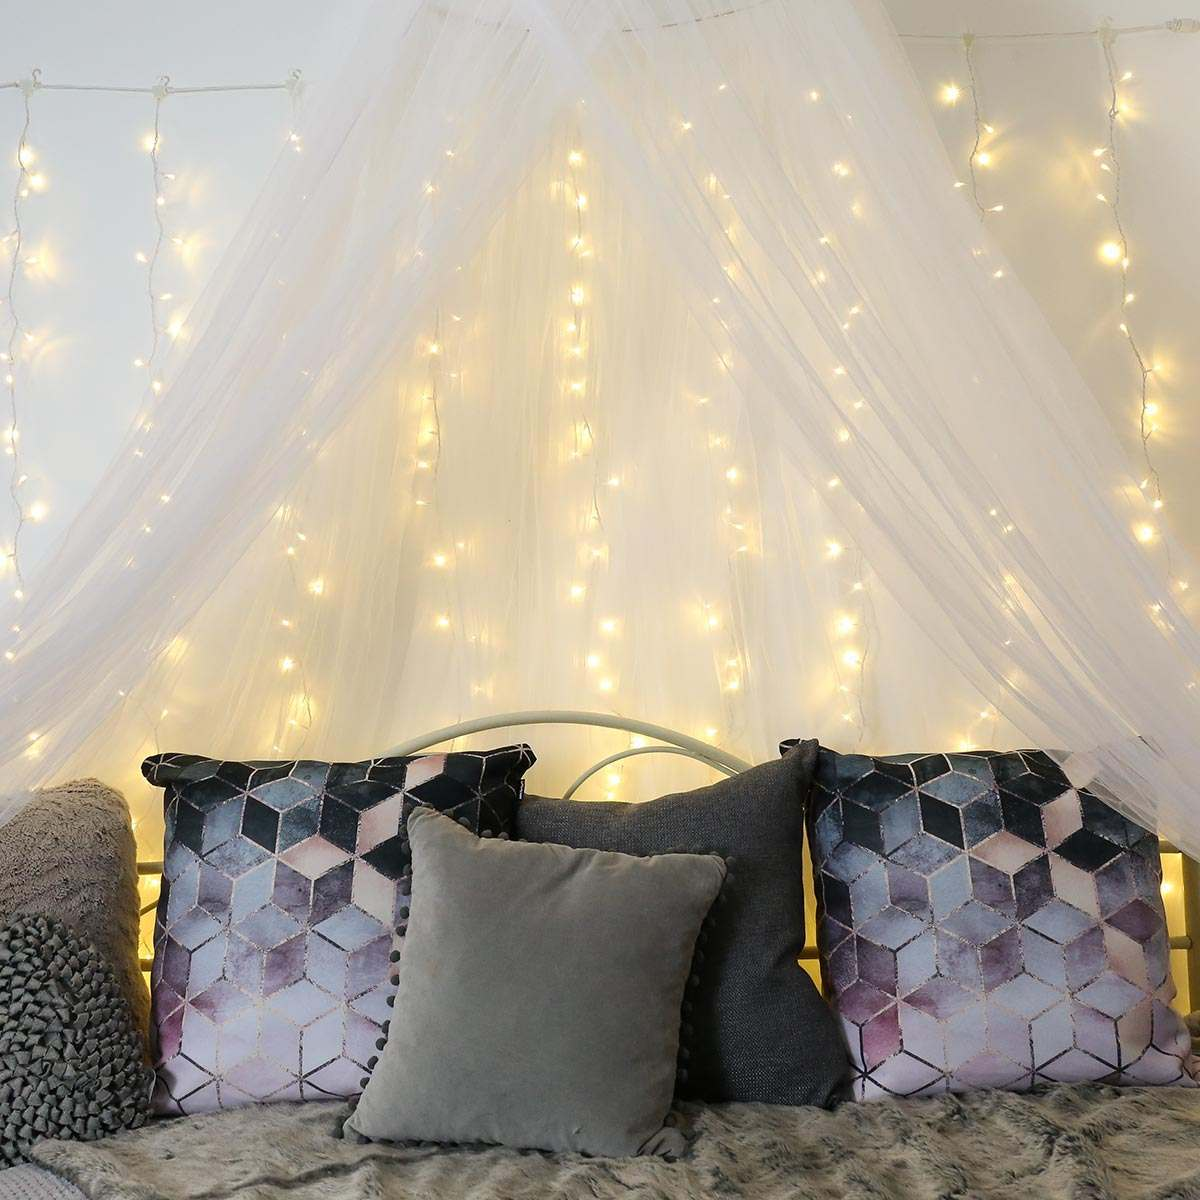 34 Fantastic Diy Home Decor Ideas With Rope: 2m X 1.5m Outdoor Curtain Light, Connectable, 300 LEDs